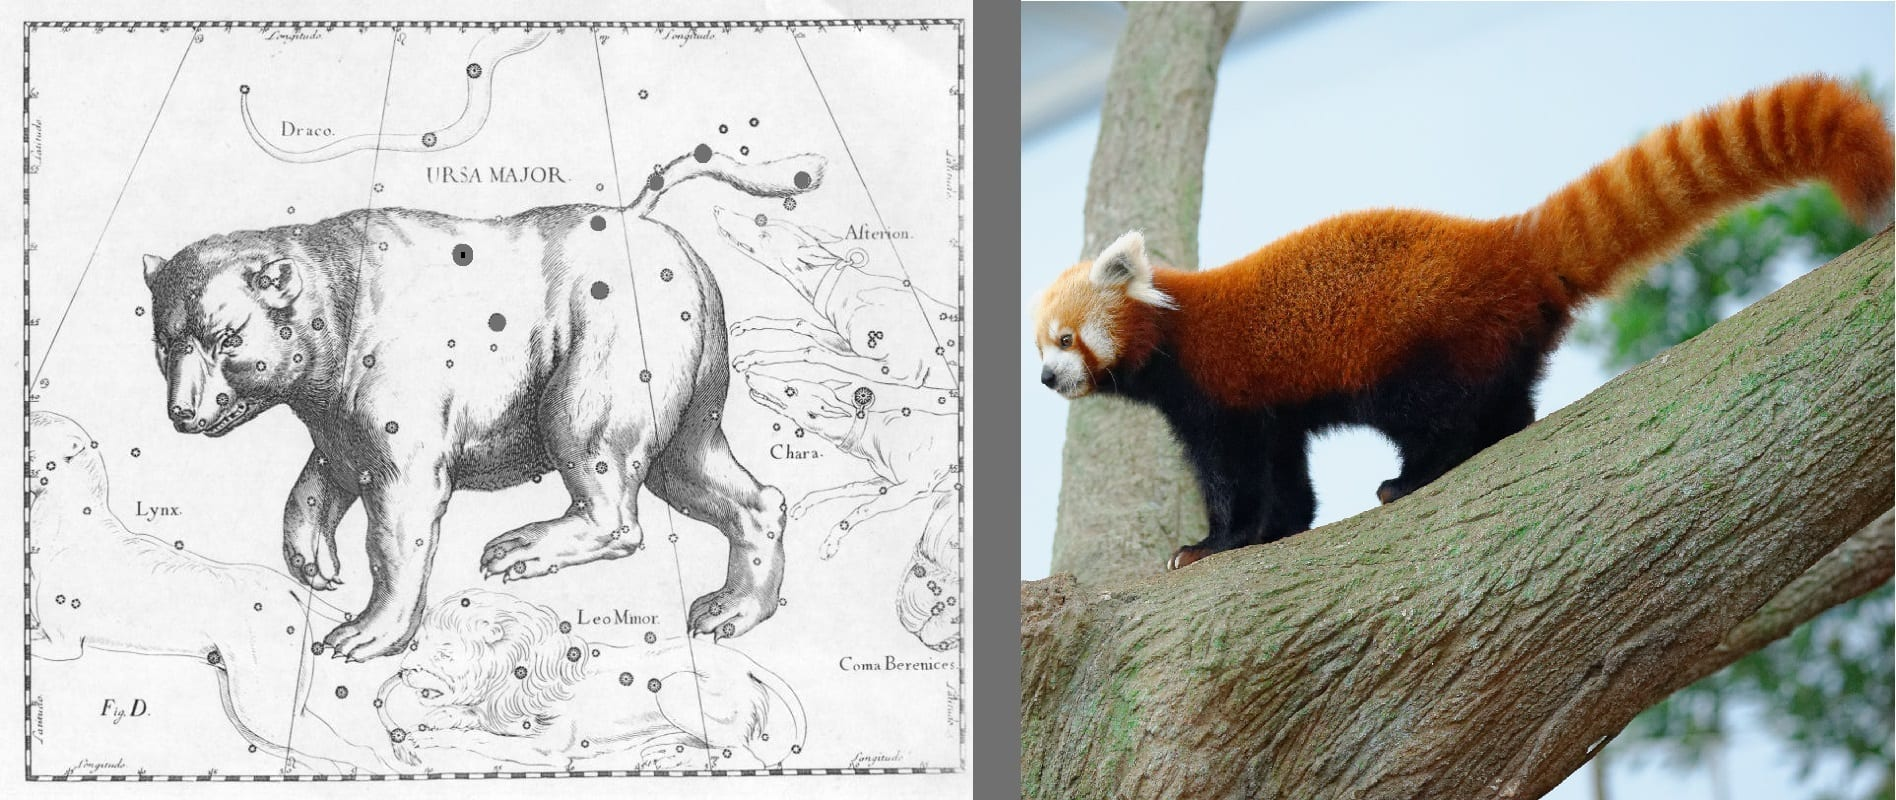 Drawing of Ursa Major as a bear with a Red Panda next to it. Red Panda photo: ID 36947330 © Jordan Tan | Dreamstime.com